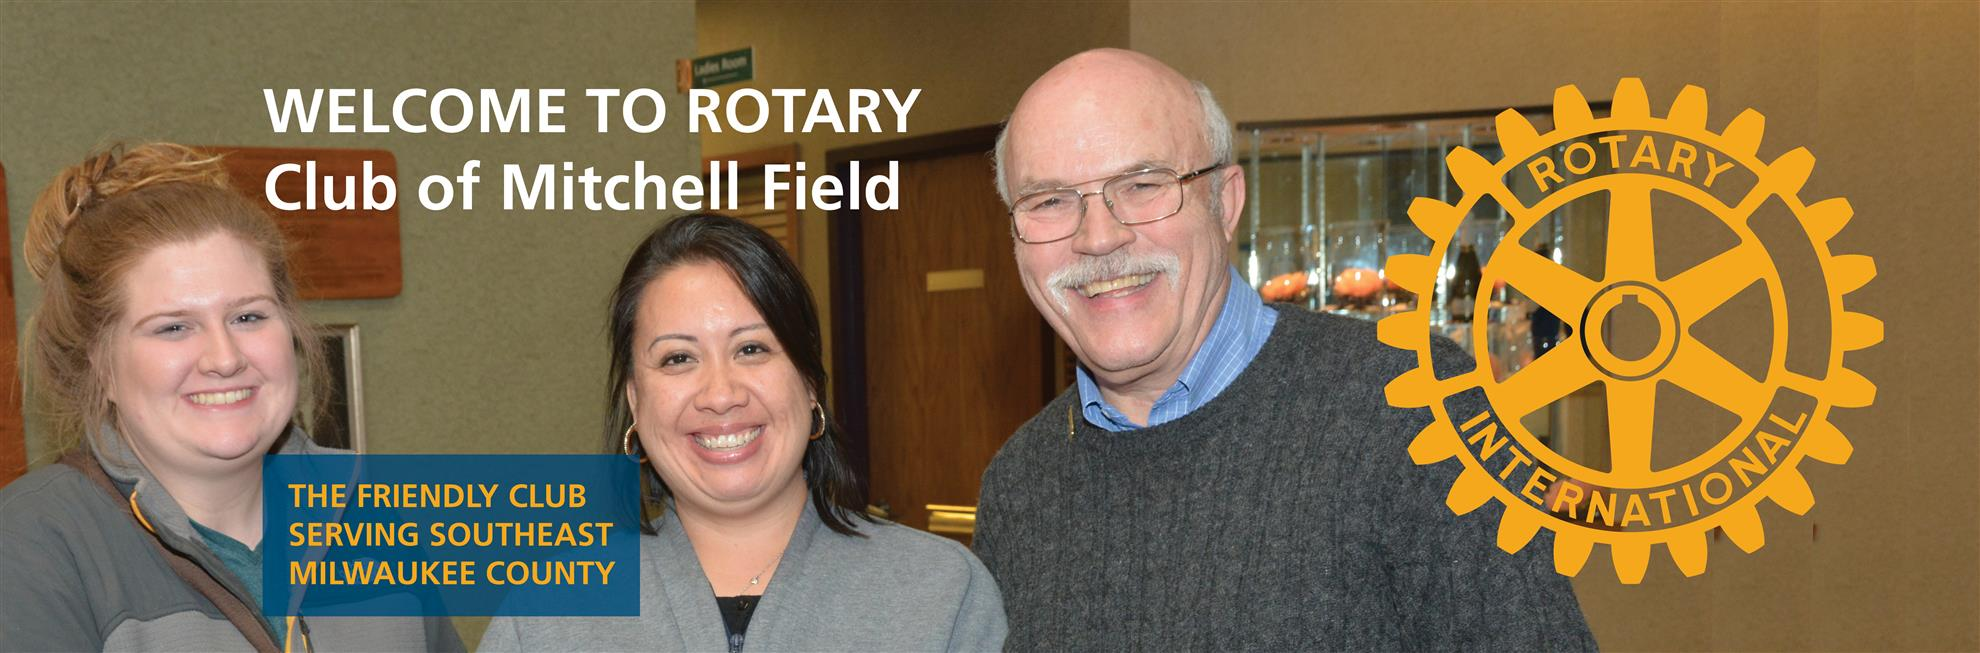 Welcome to Rotary Club of Mitchell Field